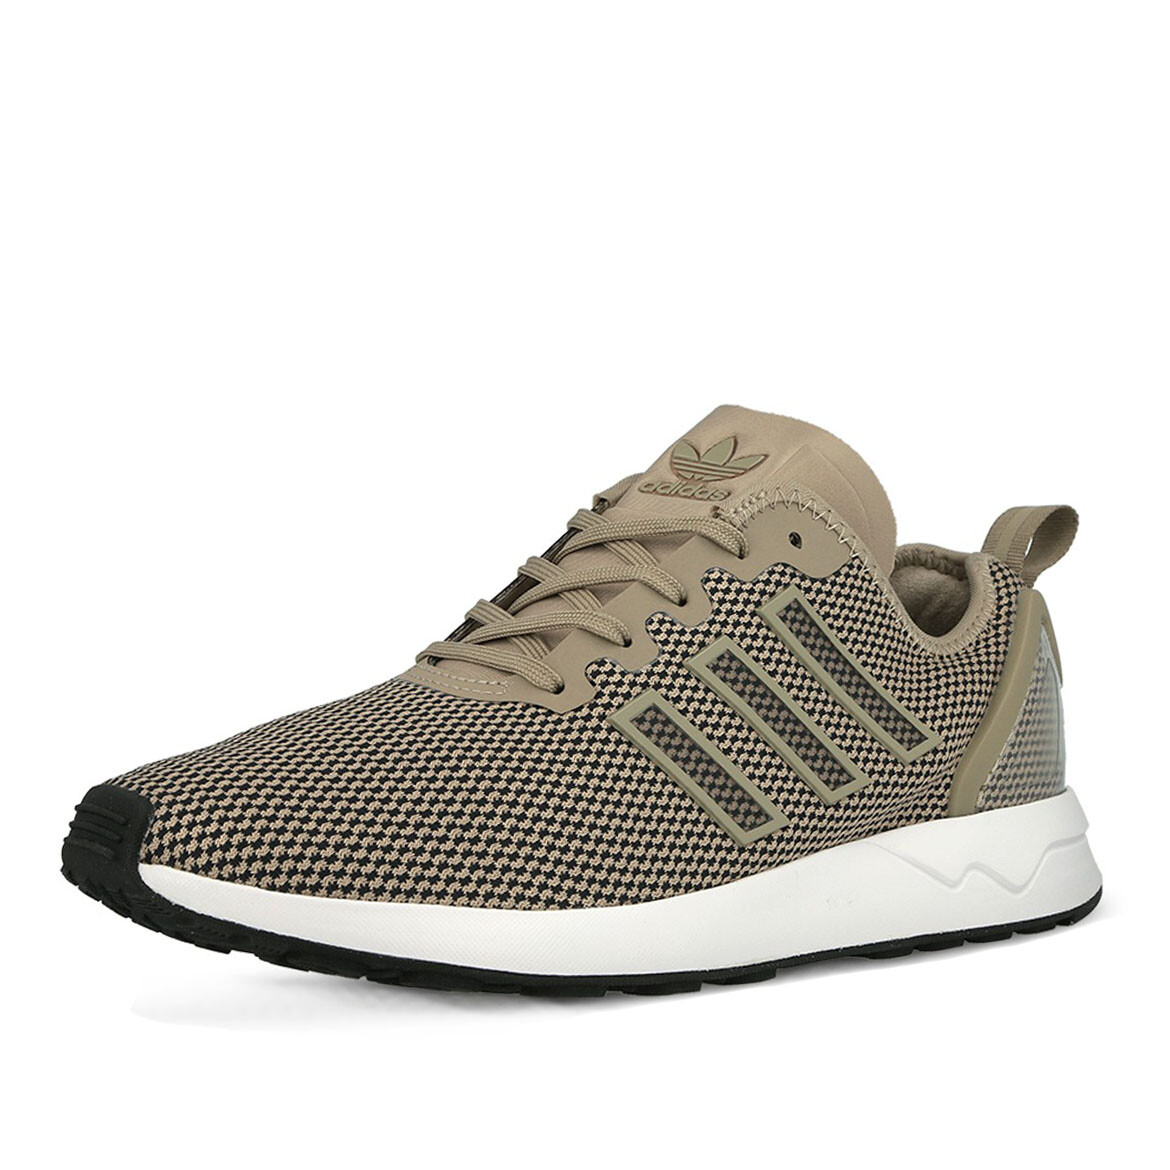 Adidas zx flux adv heren sneakers